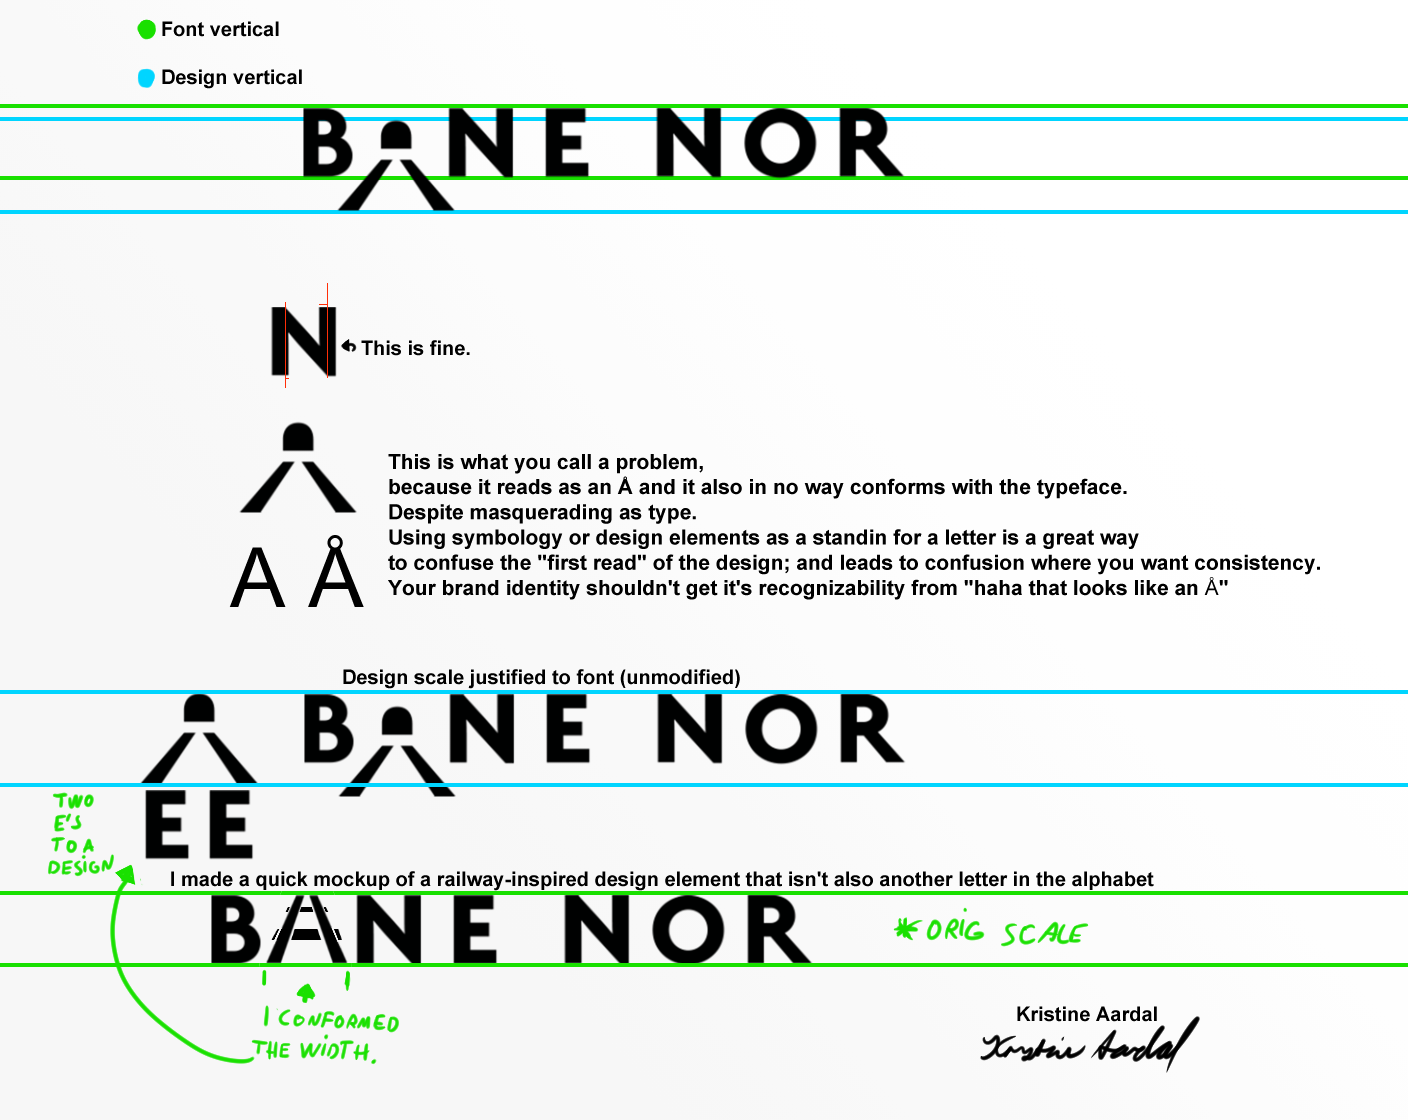 Critique of the Bane nor design